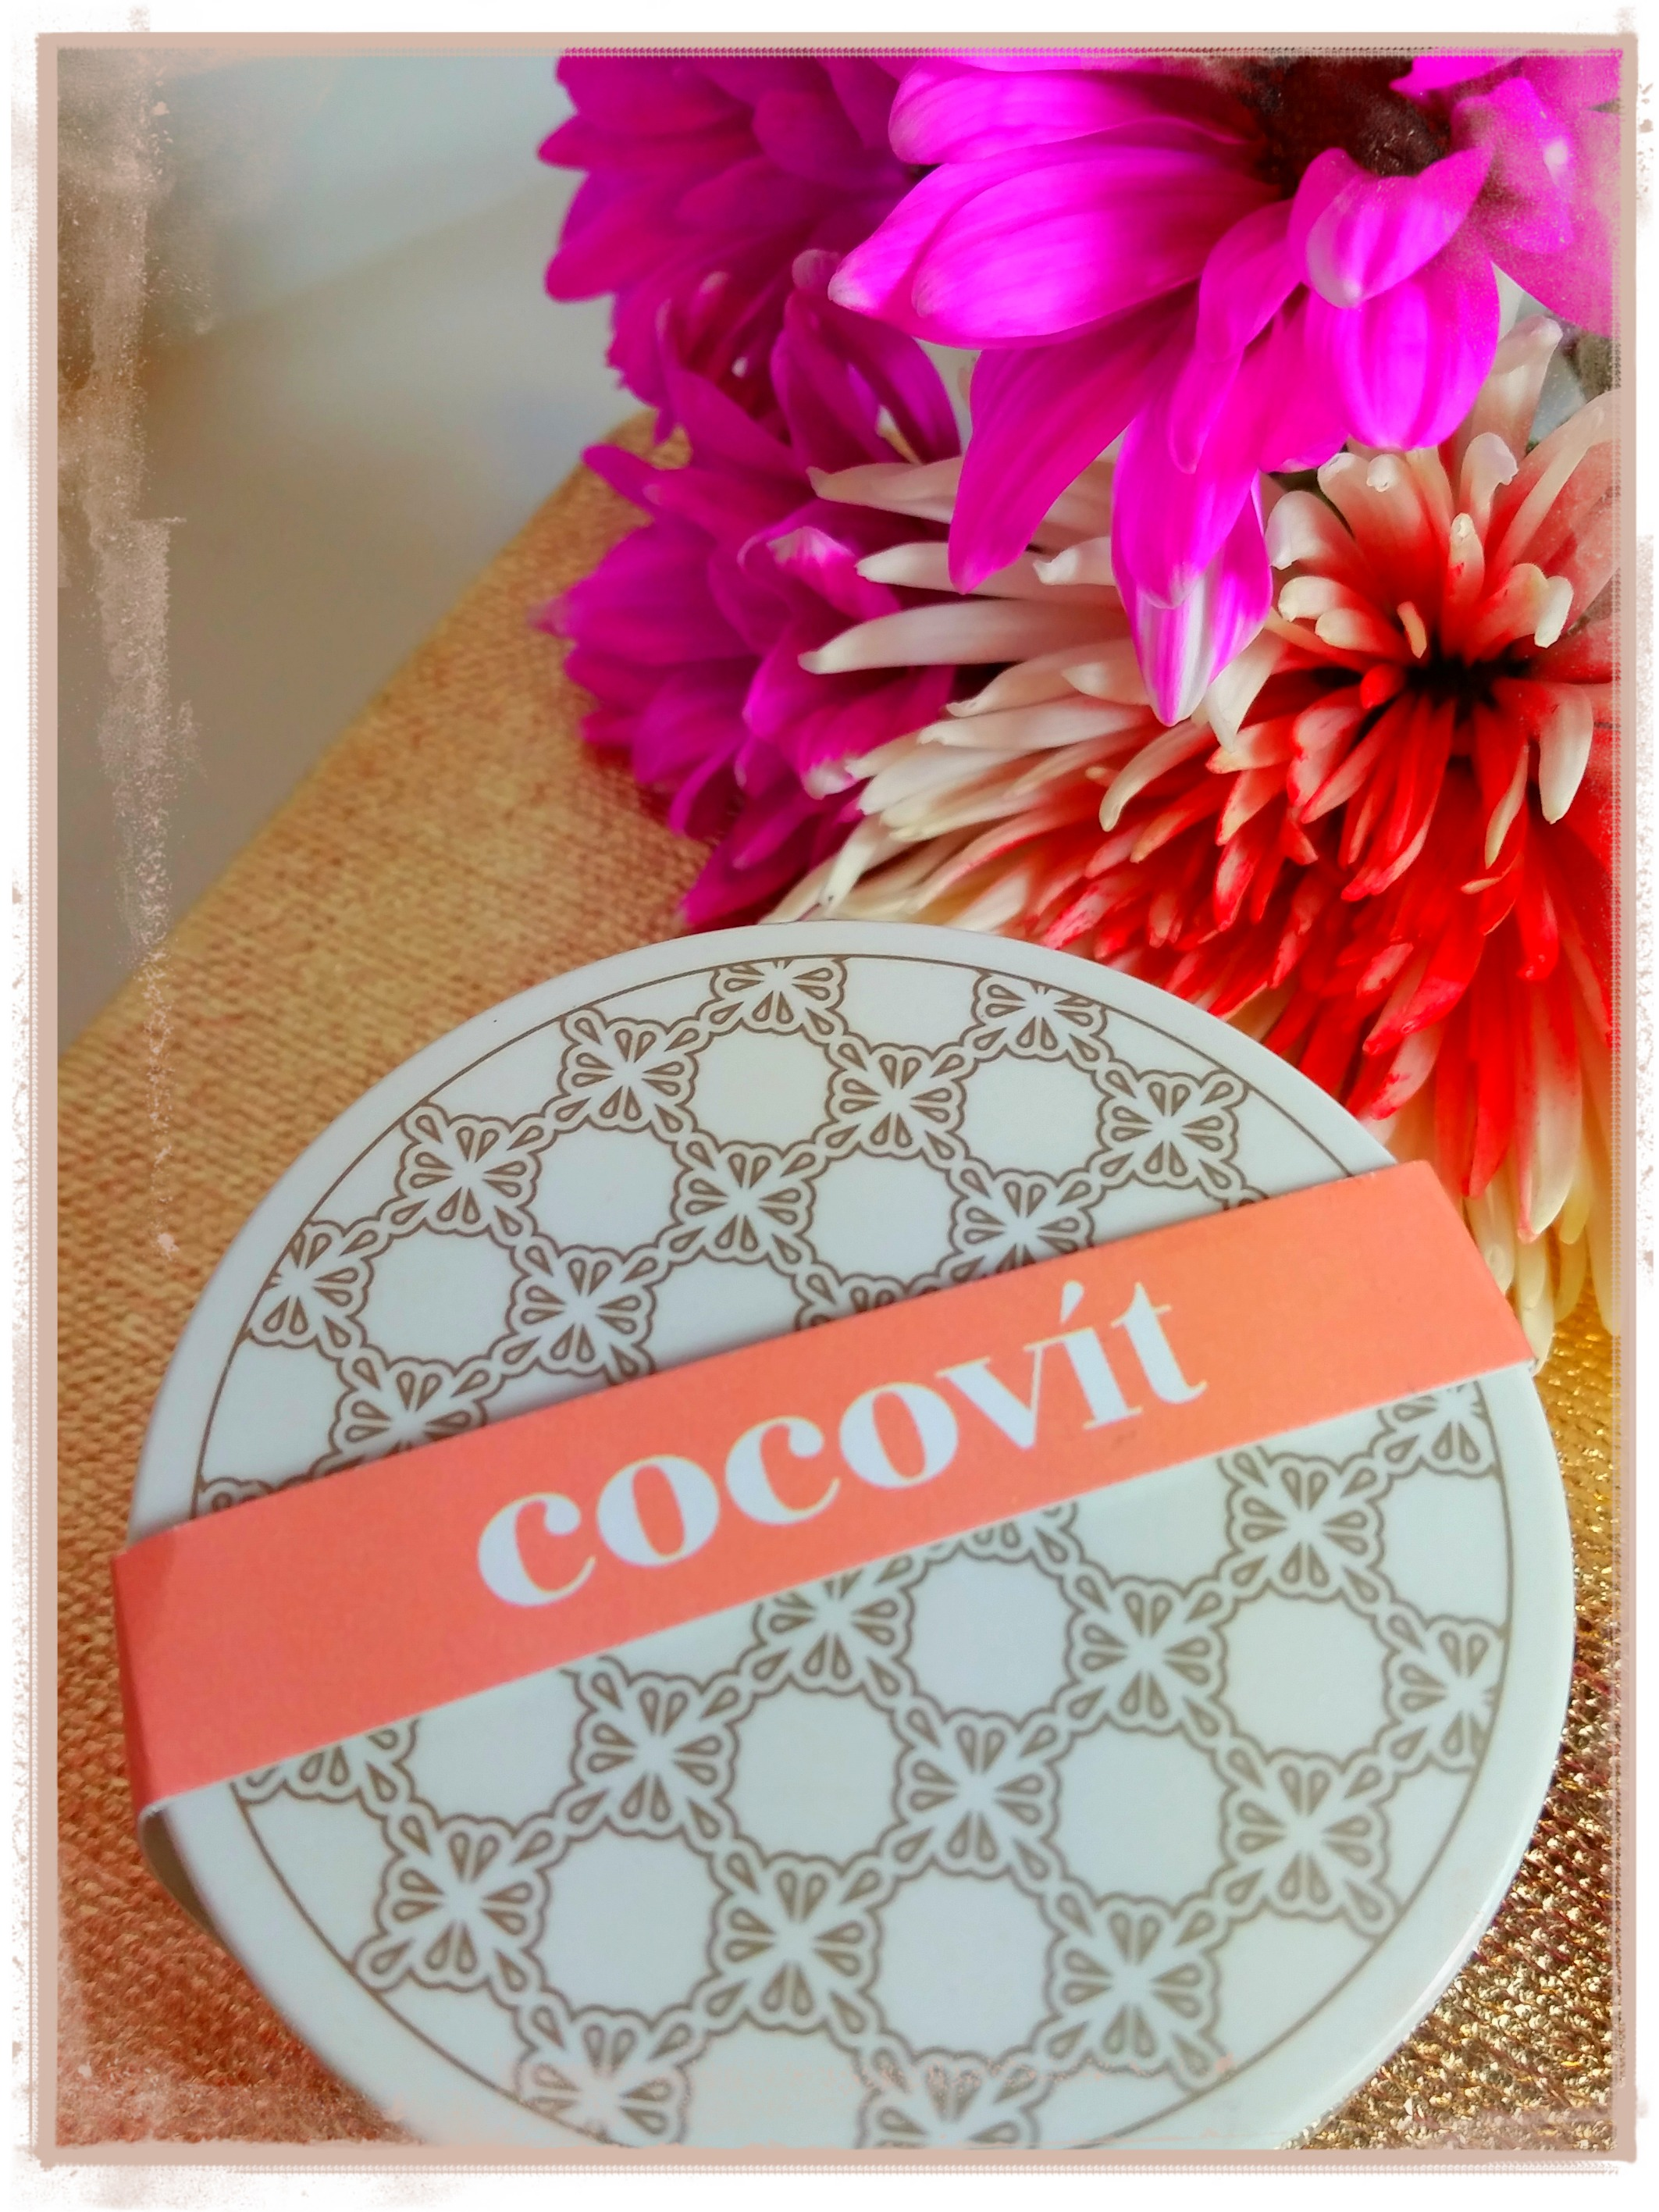 Cocovit Review By WhippedGreenGirl.com - #organic #allnatural #skincare (my little miracle jar!)